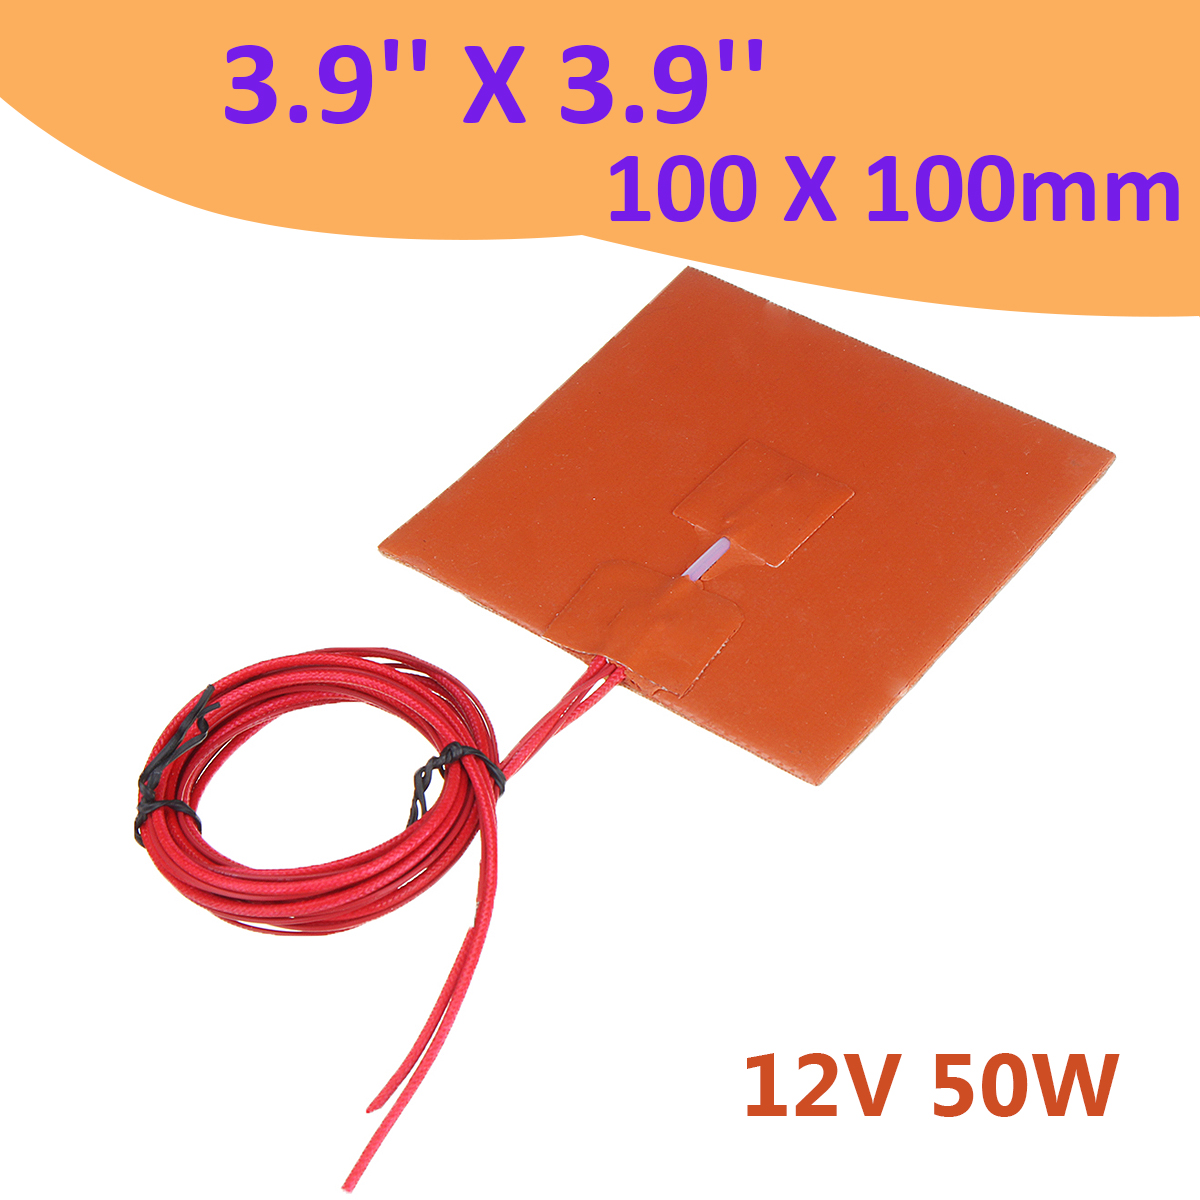 100x100mm 12V 50W Silicone Heater Bed Pad w Thermistor for 3D Printer Heat Bed Electric Pads Silica Gel Orange100x100mm 12V 50W Silicone Heater Bed Pad w Thermistor for 3D Printer Heat Bed Electric Pads Silica Gel Orange